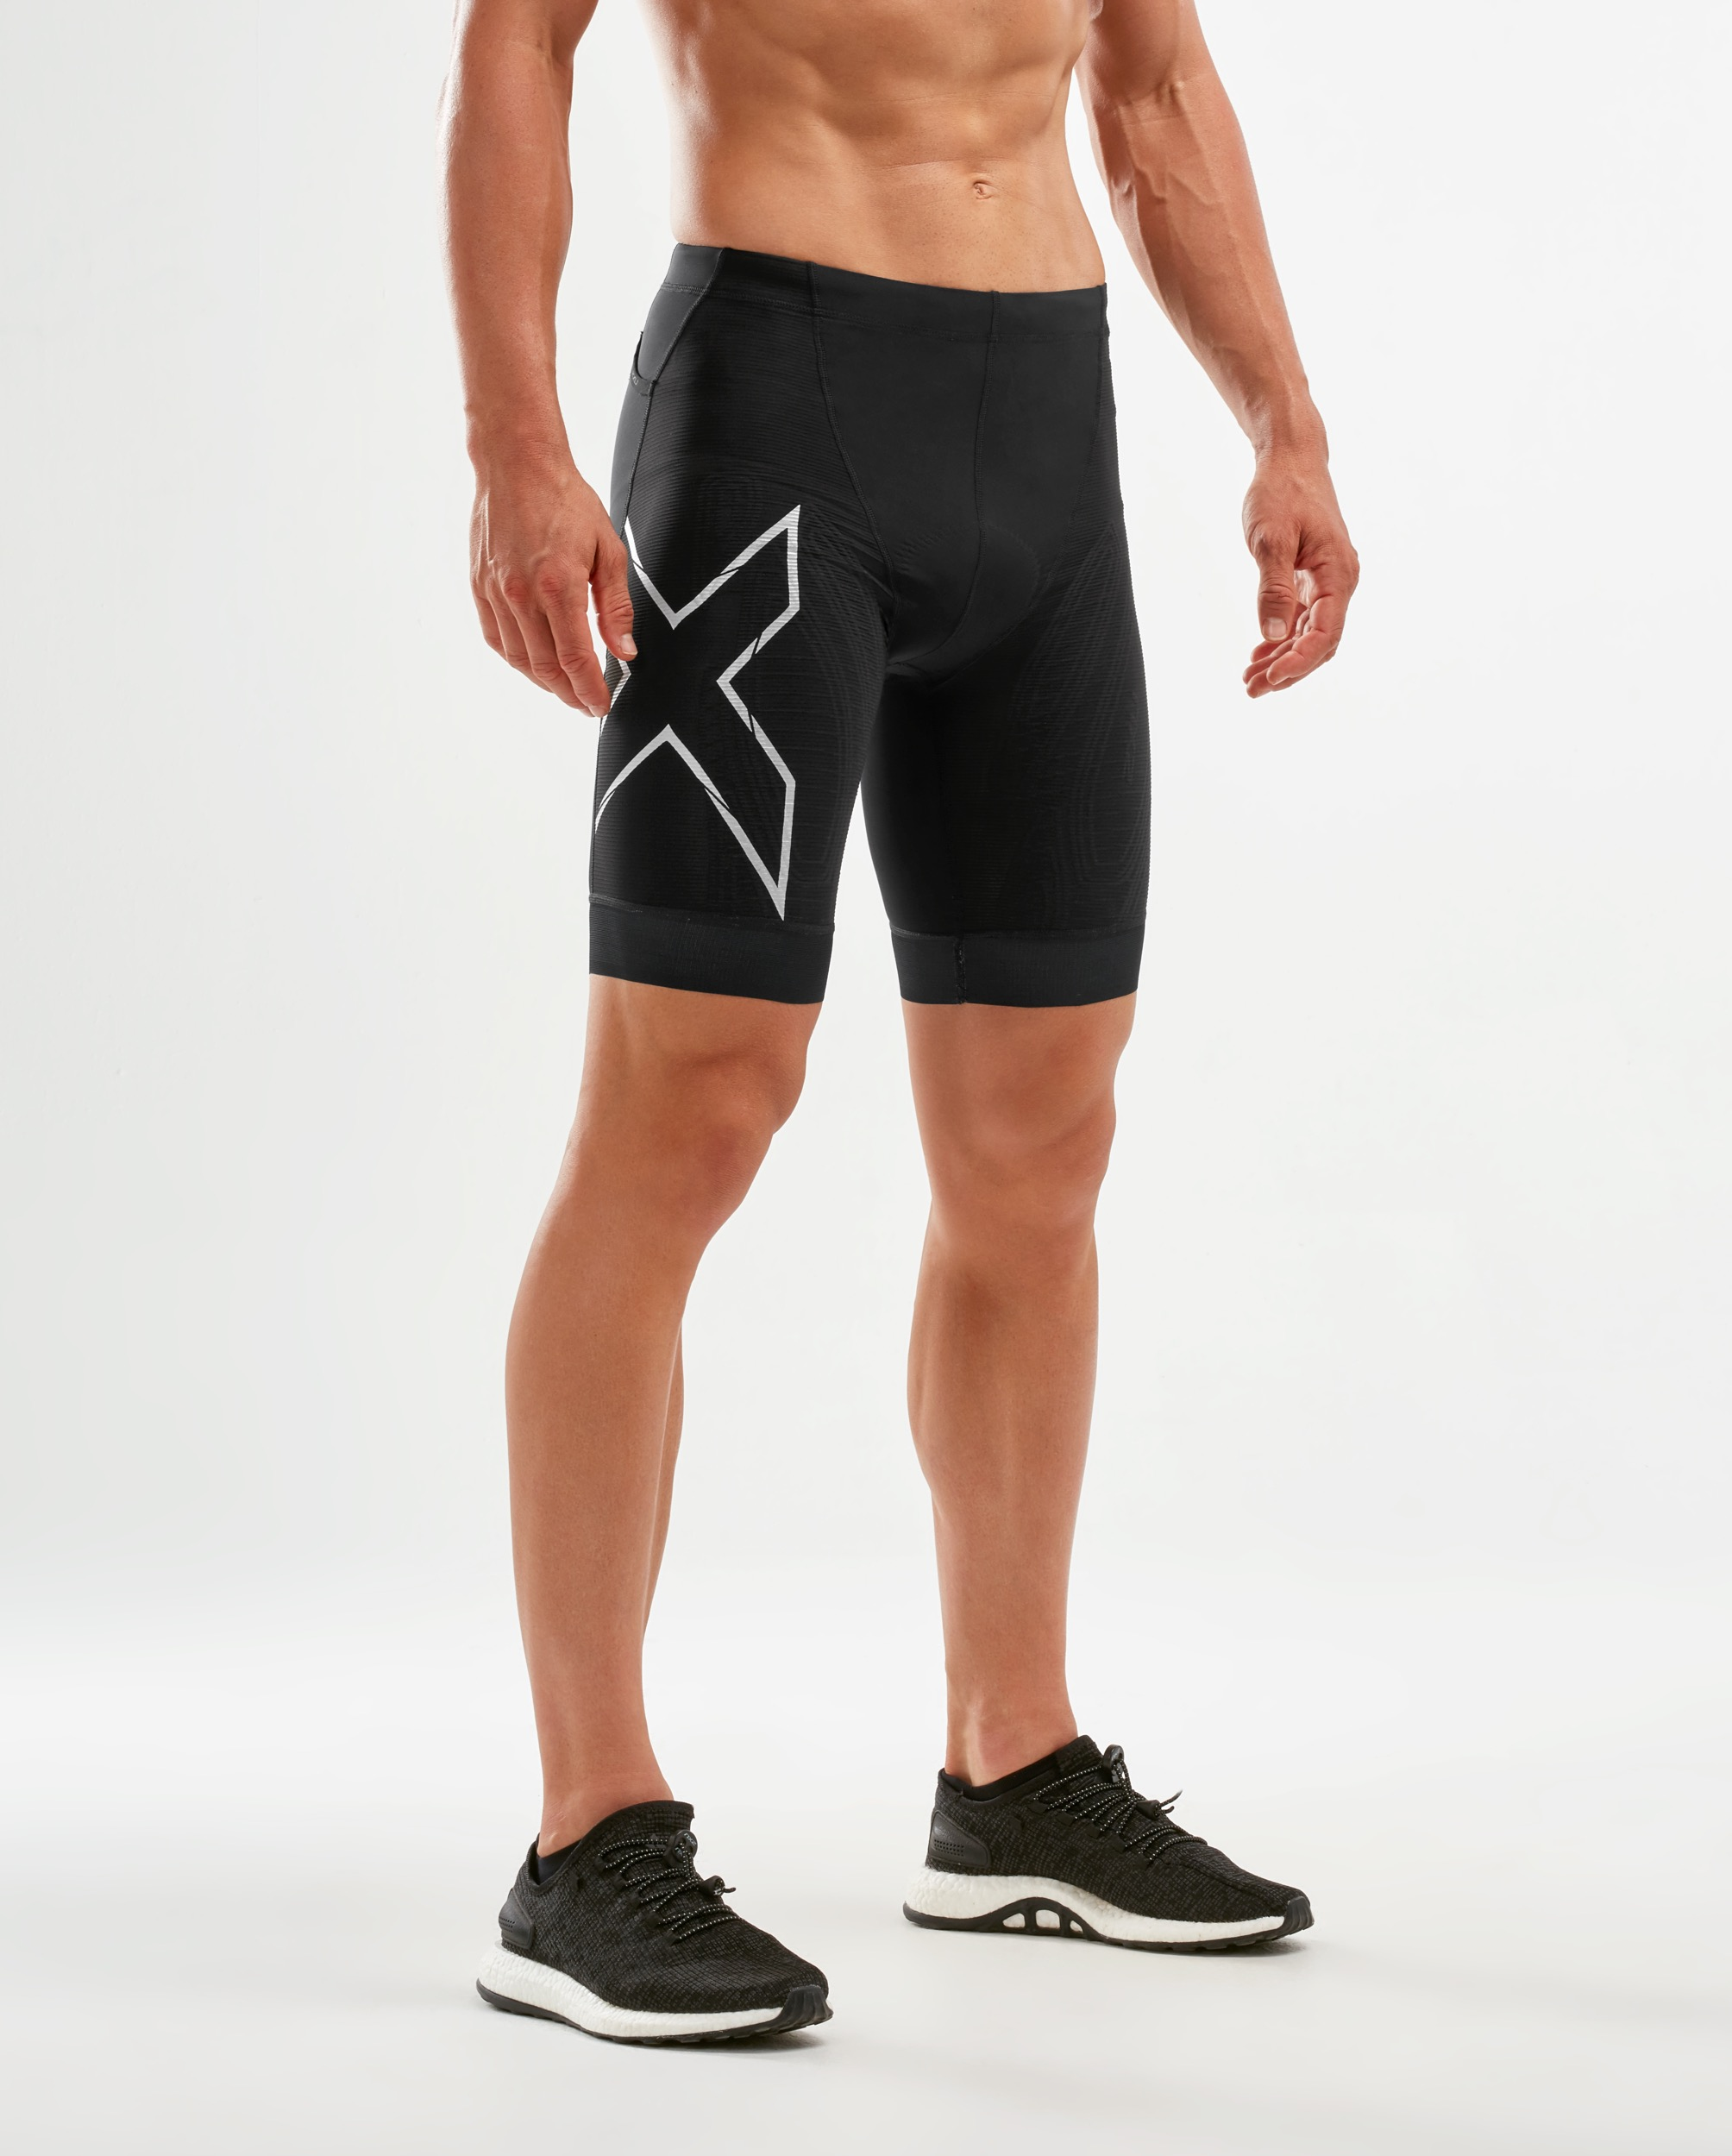 2xu - Compression | swim equipment